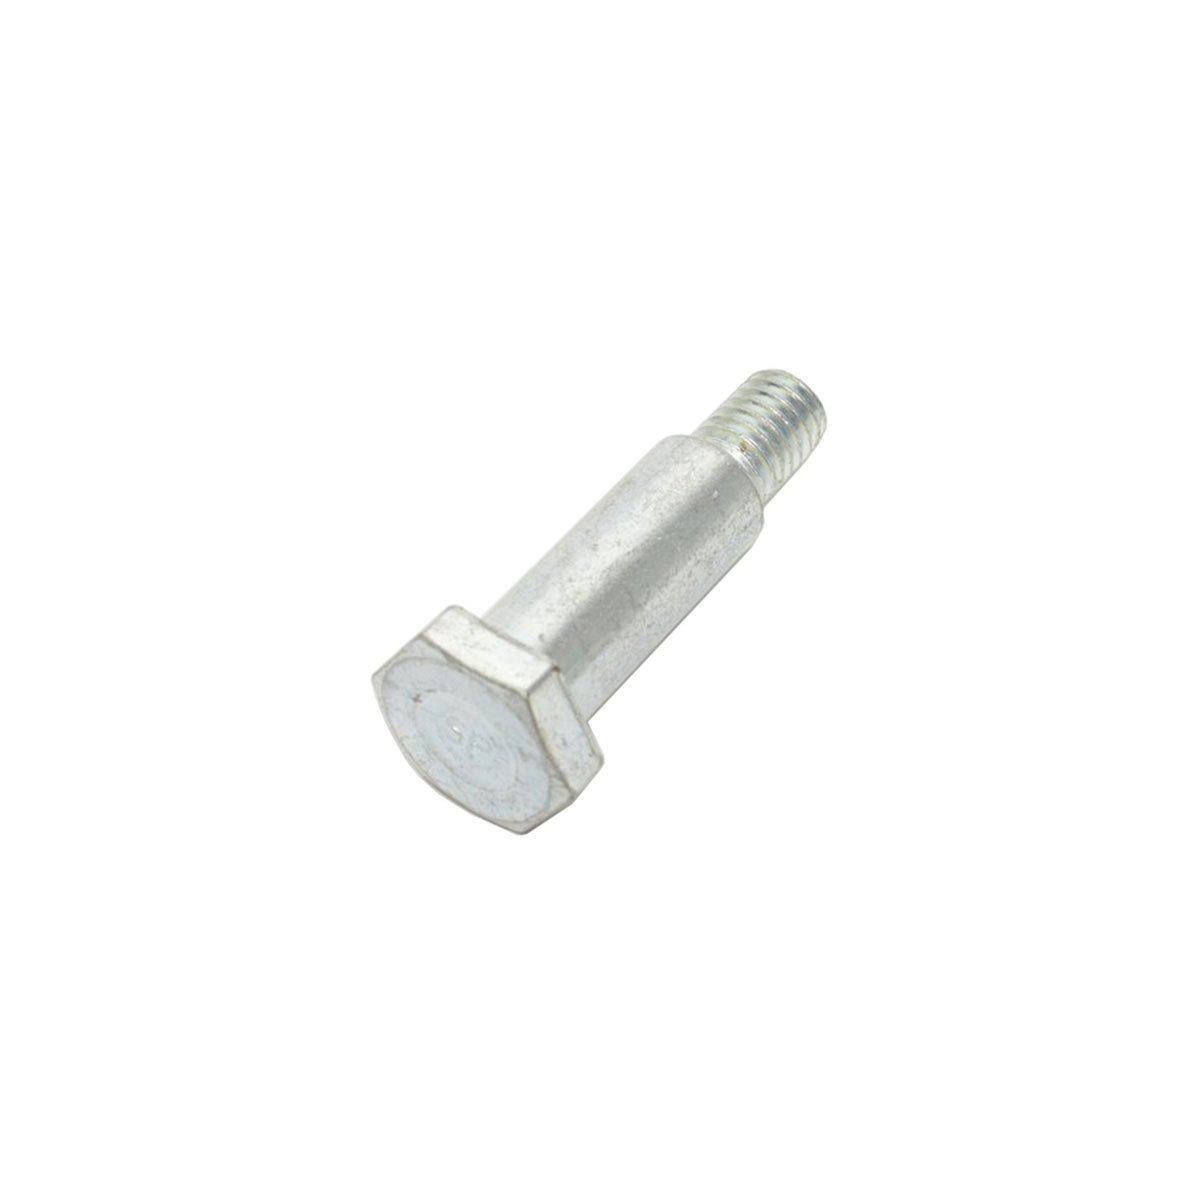 Scag Shoulder Bolt 3/8-16 x 1.25 Unc 3A 04126-01